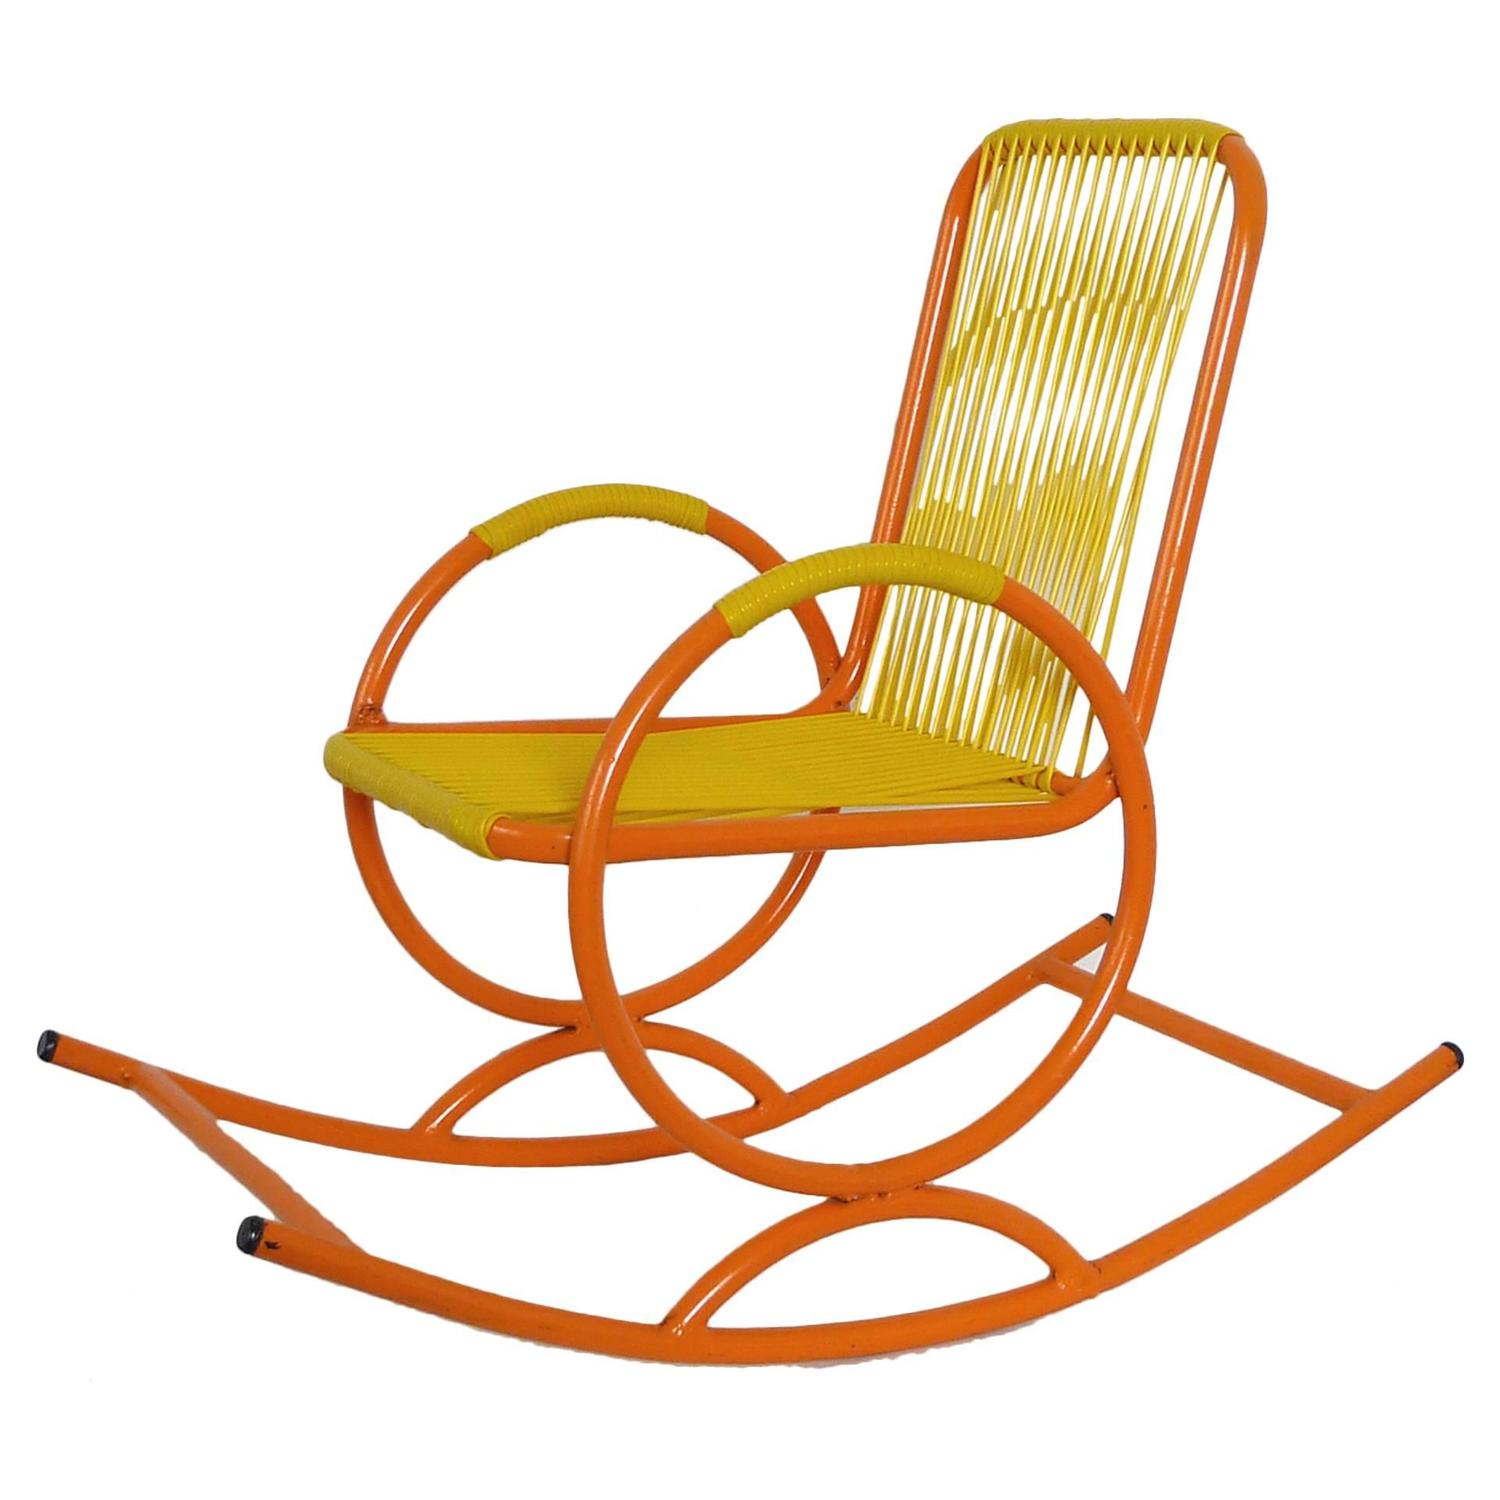 Rocking Chair For A Child Rocking Chair For A Nursery Rocking